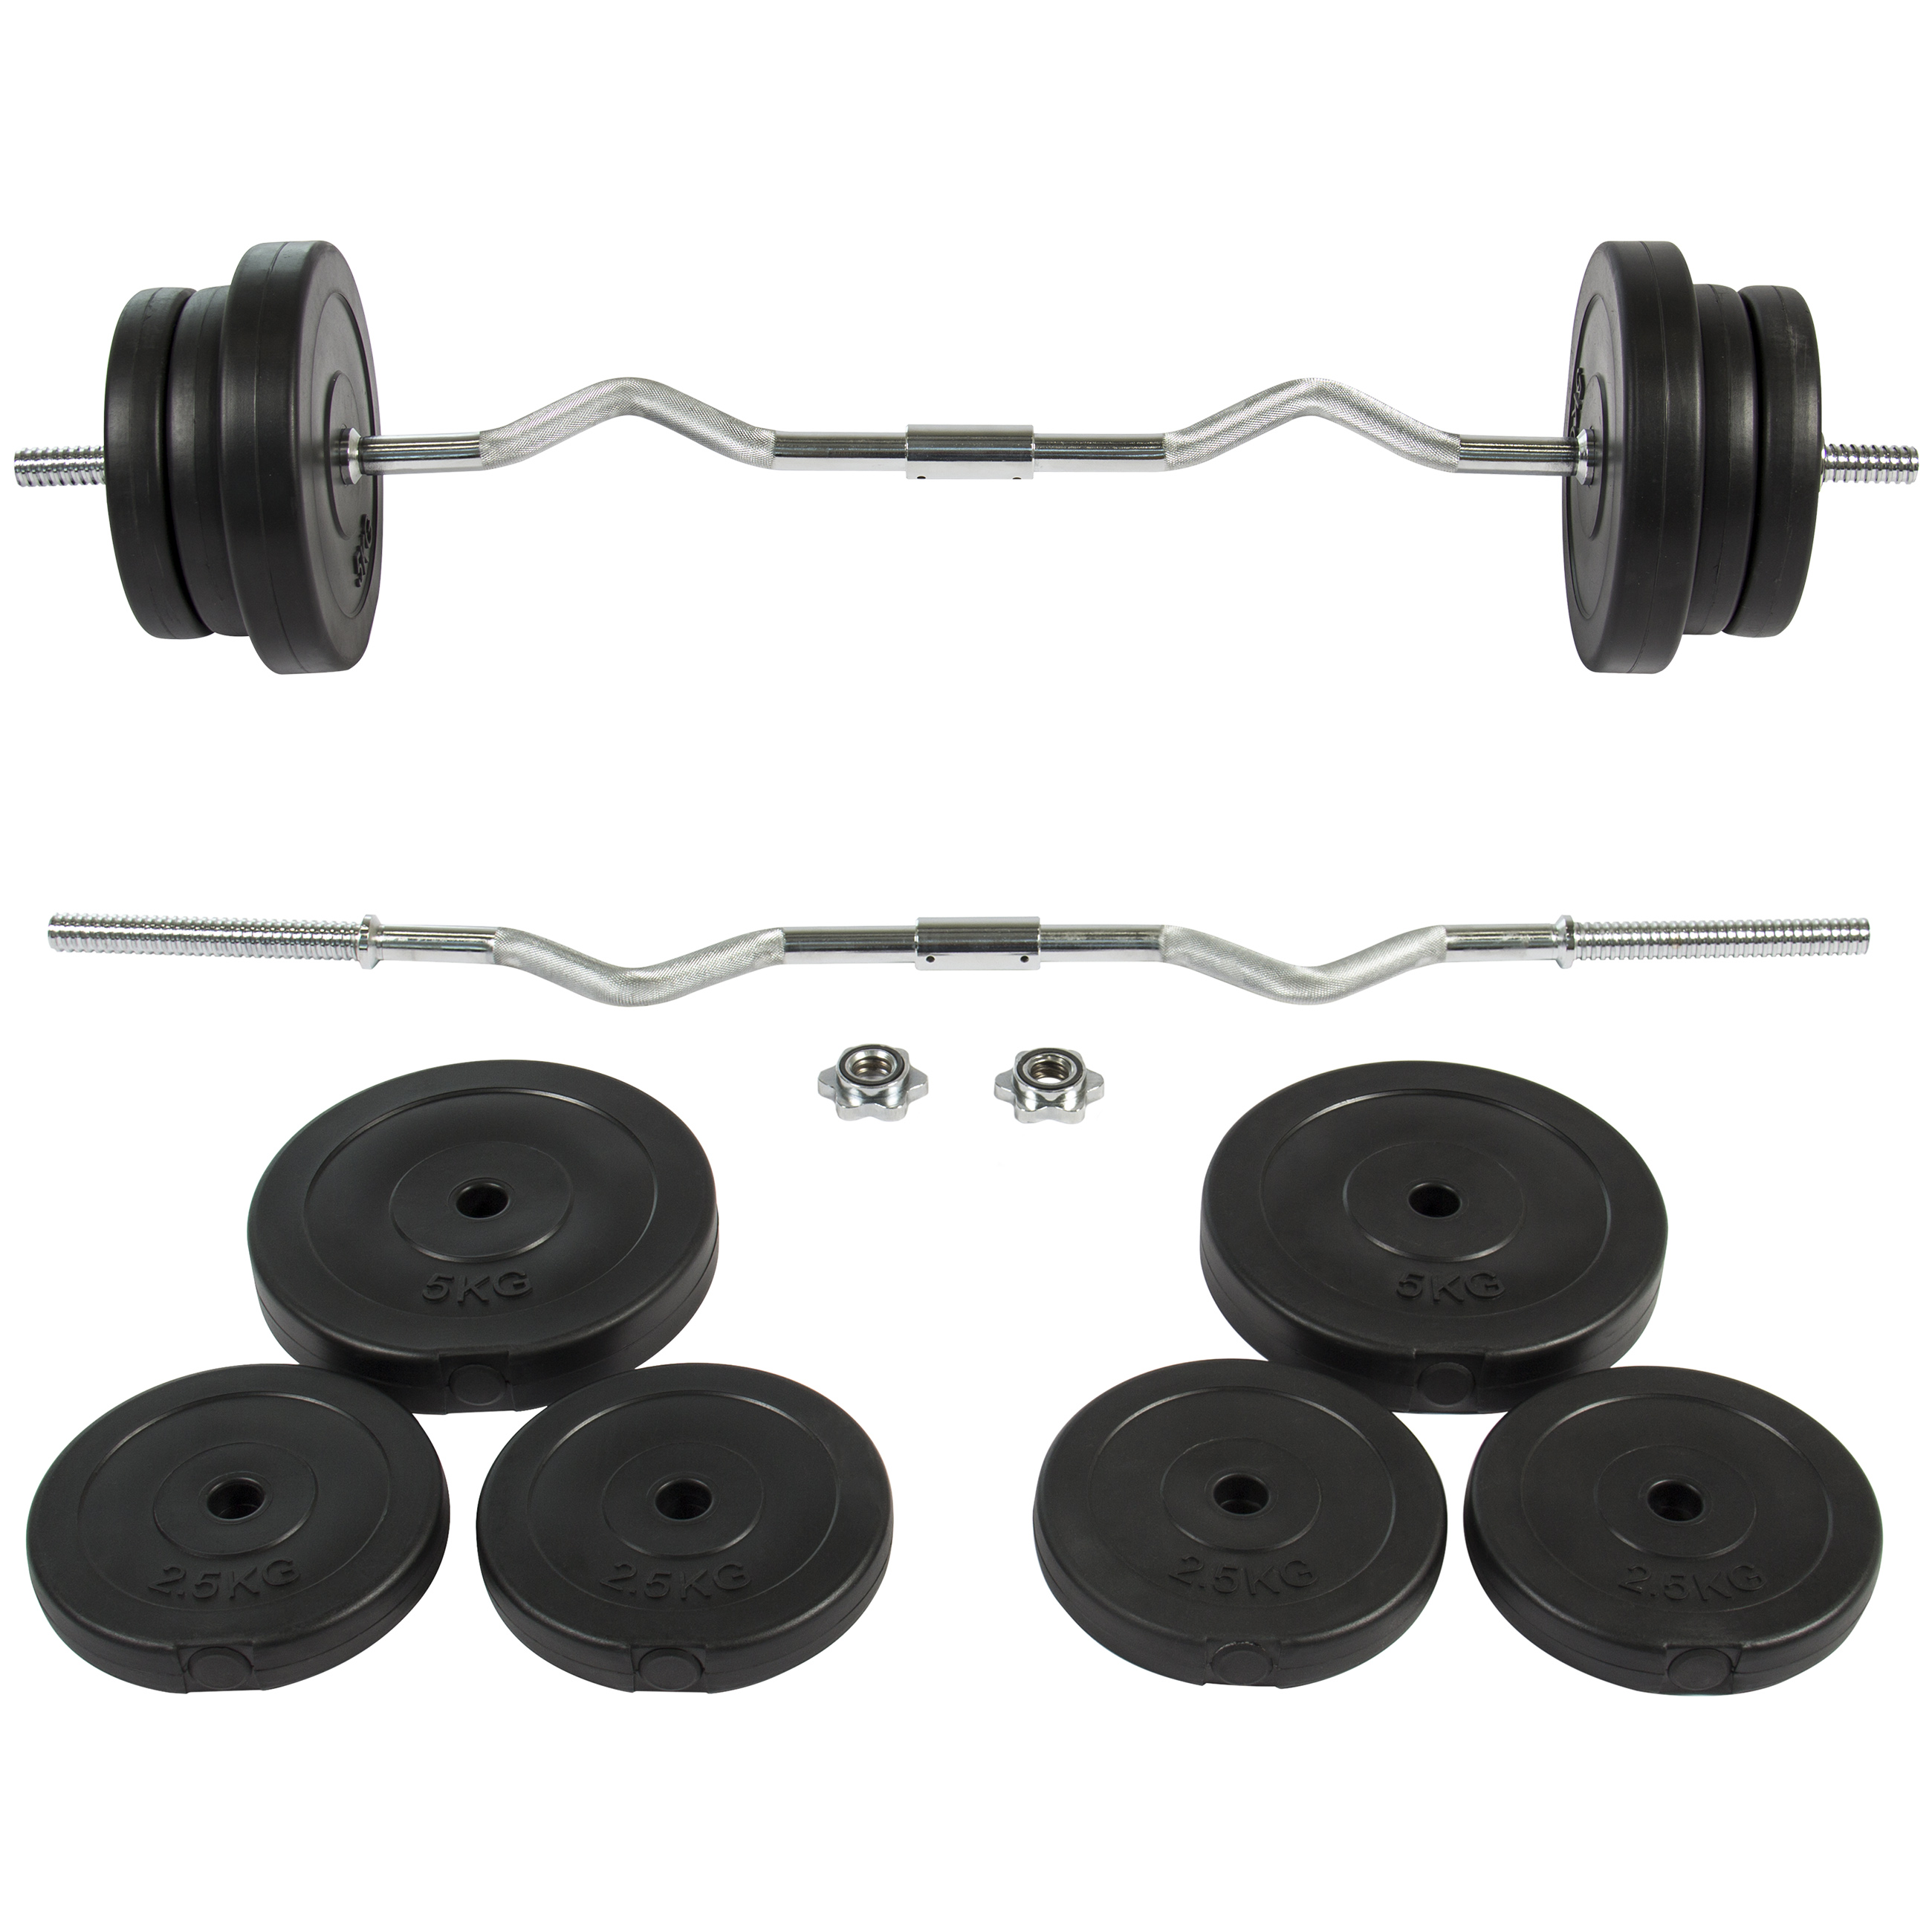 Best Choice Products 55lb 1in Ez Curl Bar Barbell Weight Set W 2 Lock Clamp Collars 6 Plates Silver Black